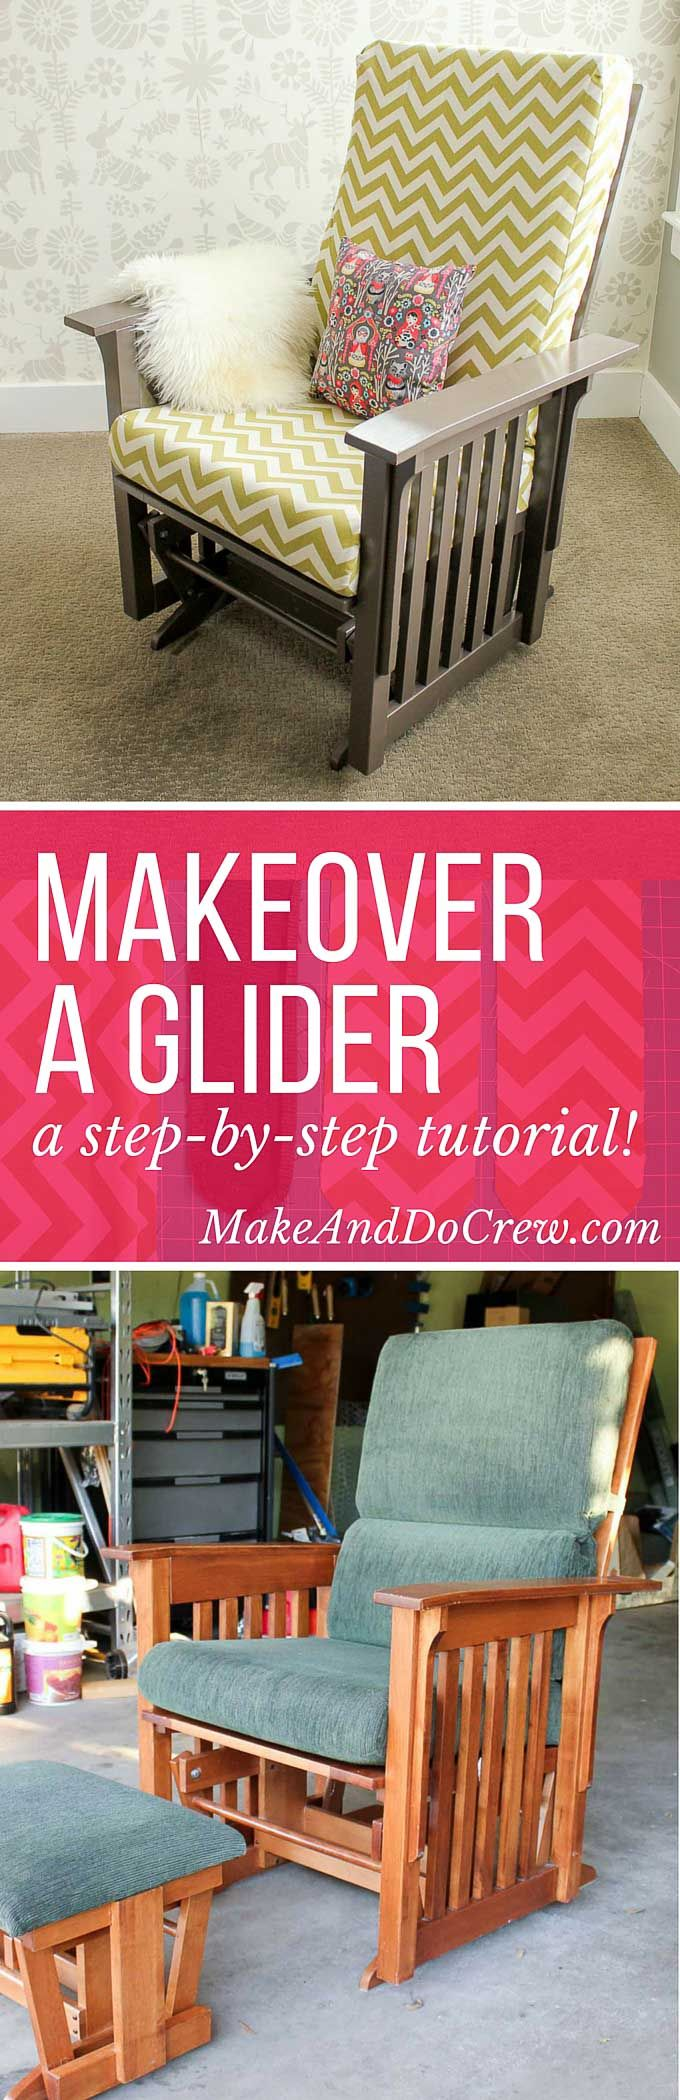 How To Recover A Glider Rocking Chair   Photo Tutorial